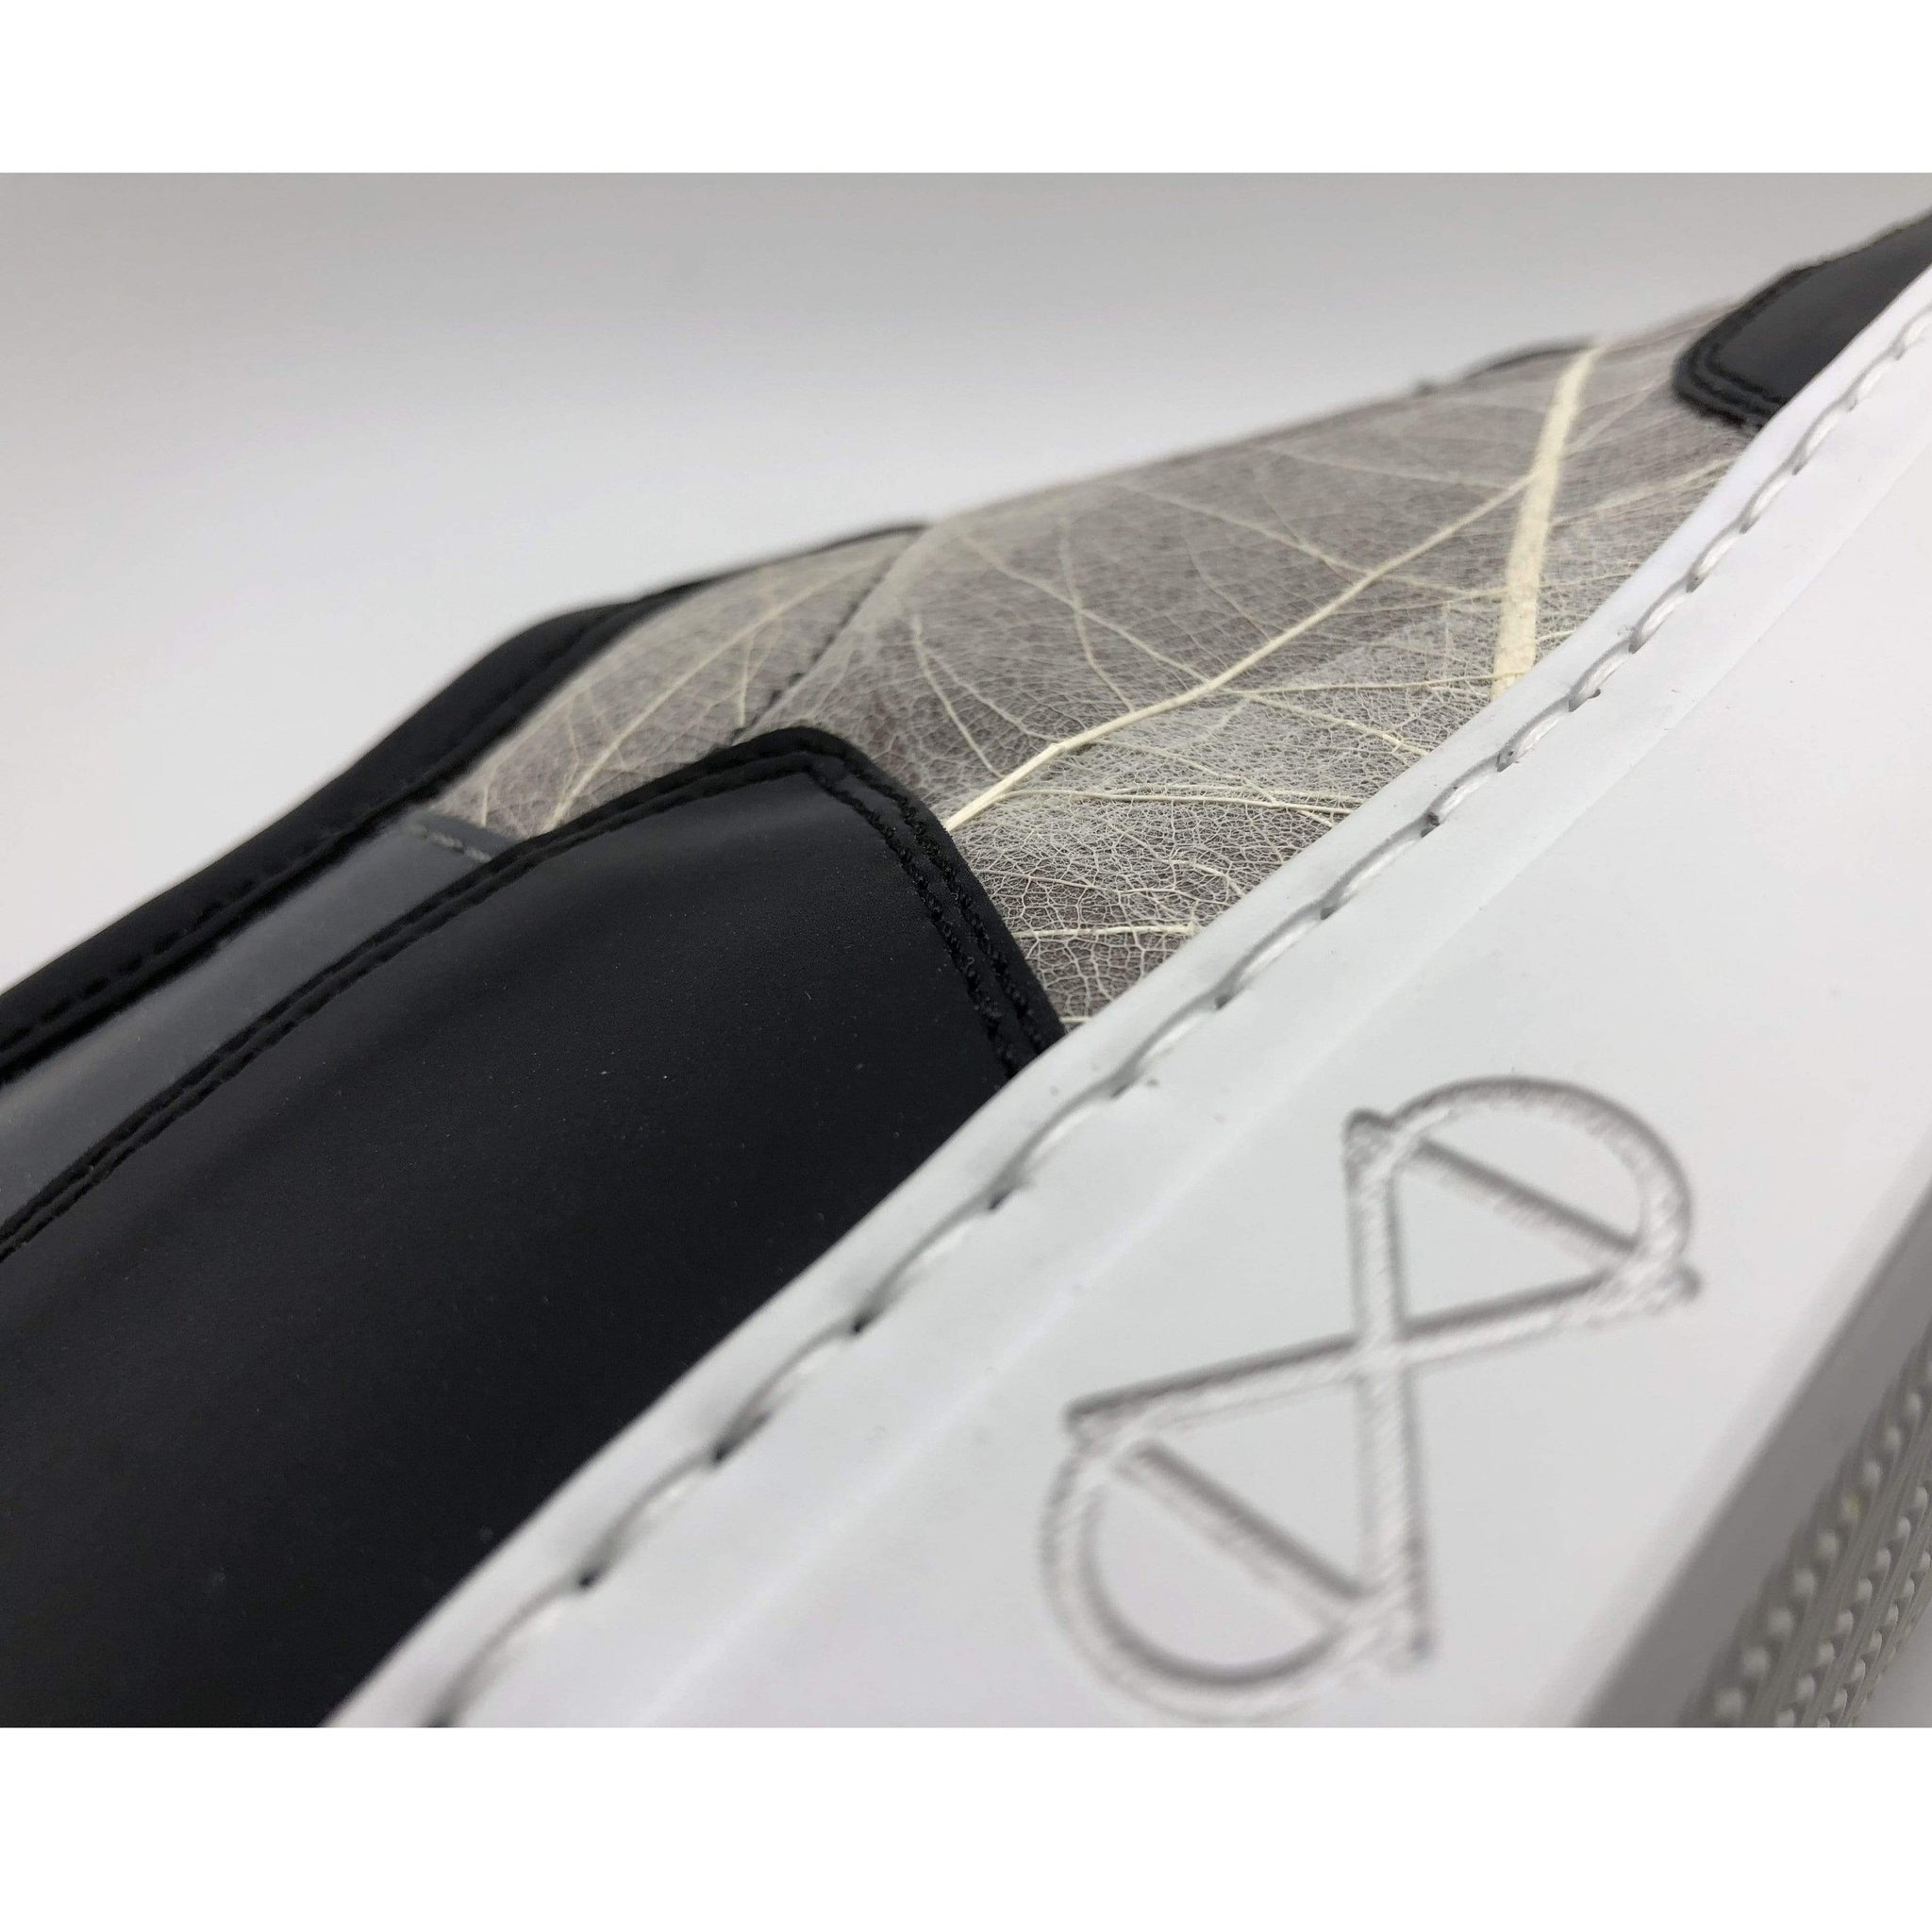 NAT 2 shoe Skeleton Leaves Sneakers. Real Skeleton Leaves, Glass and Recycled PET Bottles. sustainable fashion ethical fashion